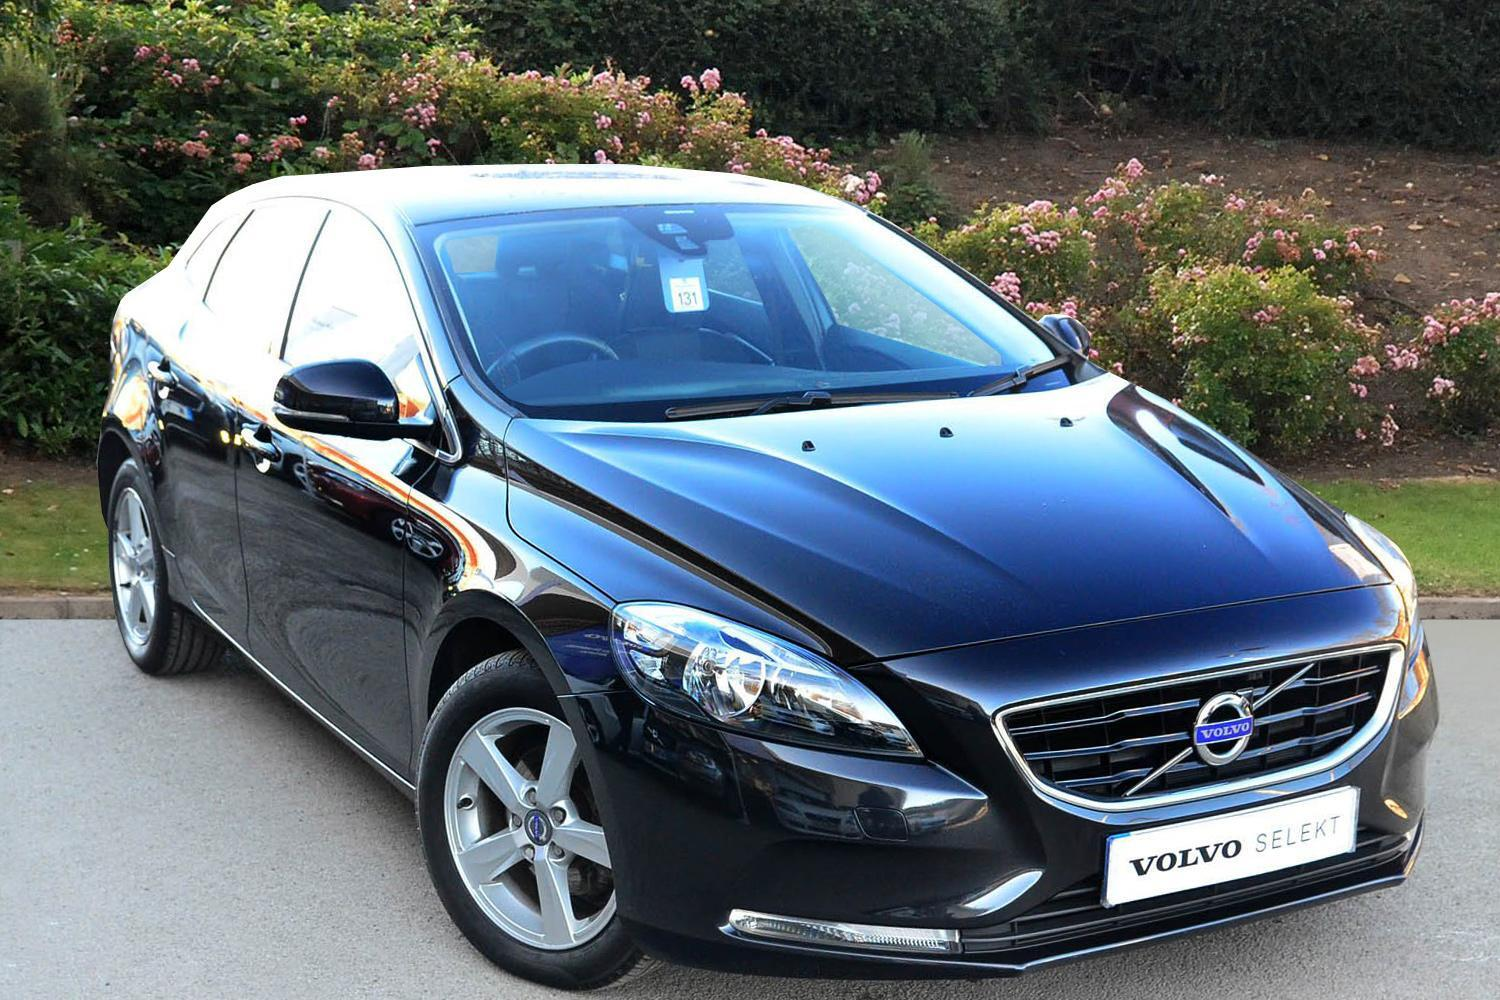 used volvo v40 d2 se 5dr diesel hatchback for sale. Black Bedroom Furniture Sets. Home Design Ideas